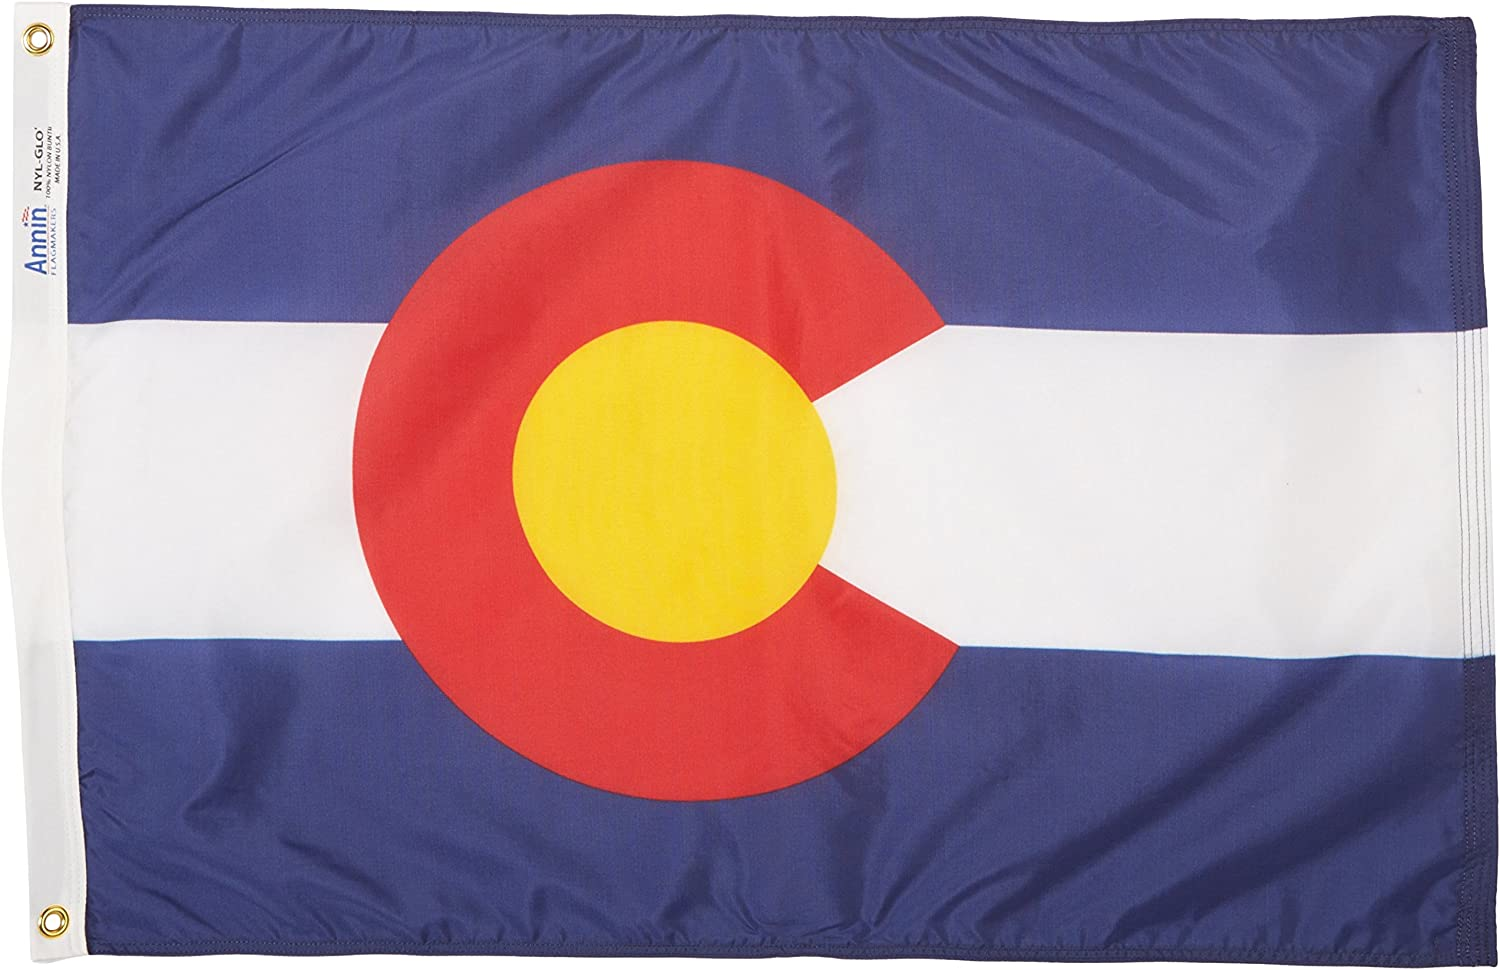 Annin Flagmakers Model 140650 Colorado Flag Nylon SolarGuard NYL-Glo, 2x3 ft, 100% Made in USA to Official State Design Specifications